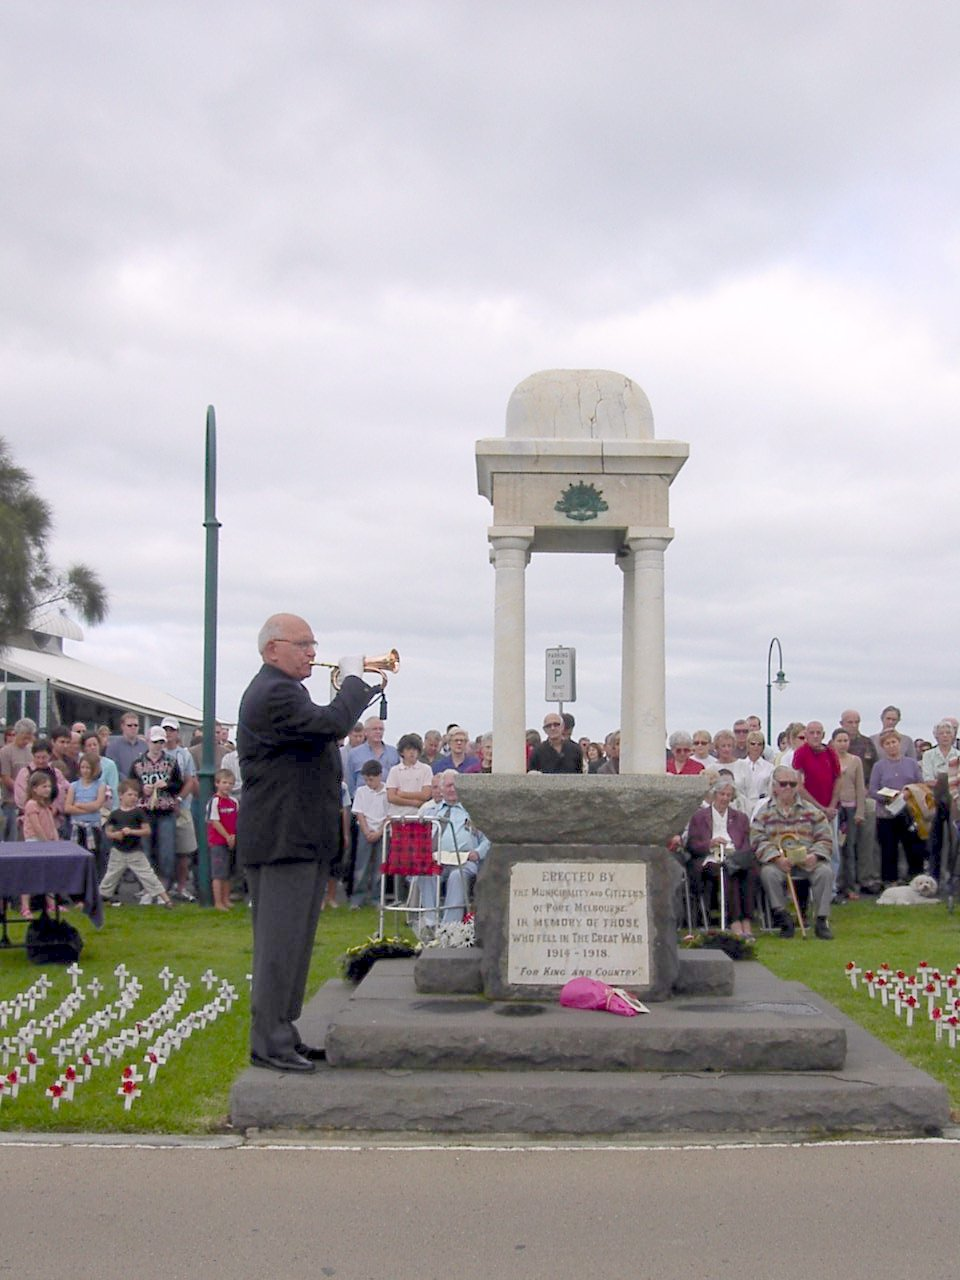 The Last Post is played at an Anzac Day ceremony in Port Melbourne, Victoria, on April 25, 2005. Ceremonies like this are held in virtually every suburb and town in Australia and New Zealand on Anzac Day each year.